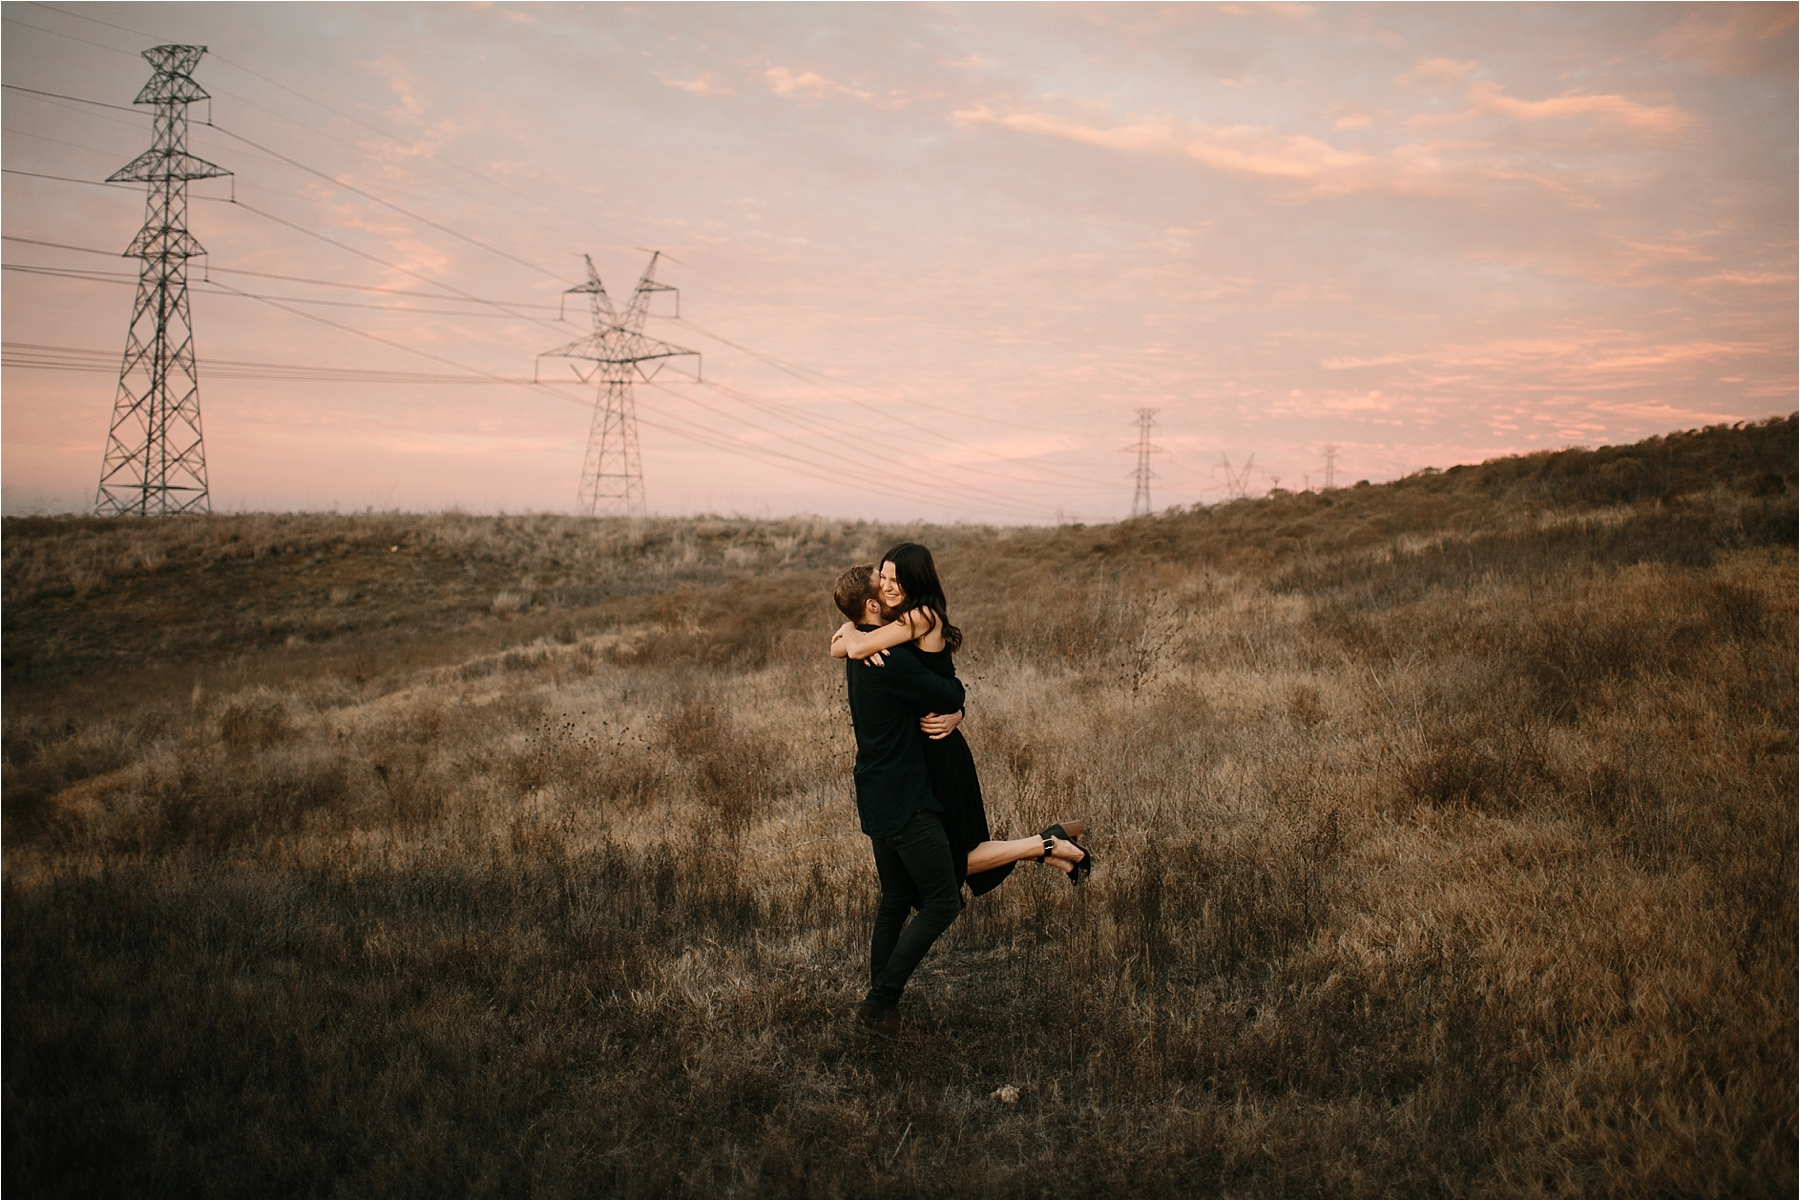 Trey + Phoebe __ a playful, intimate engagement session with dark_neutral outfit inspiration by North Texas Wedding Photographer Rachel Meagan Photography __ 63